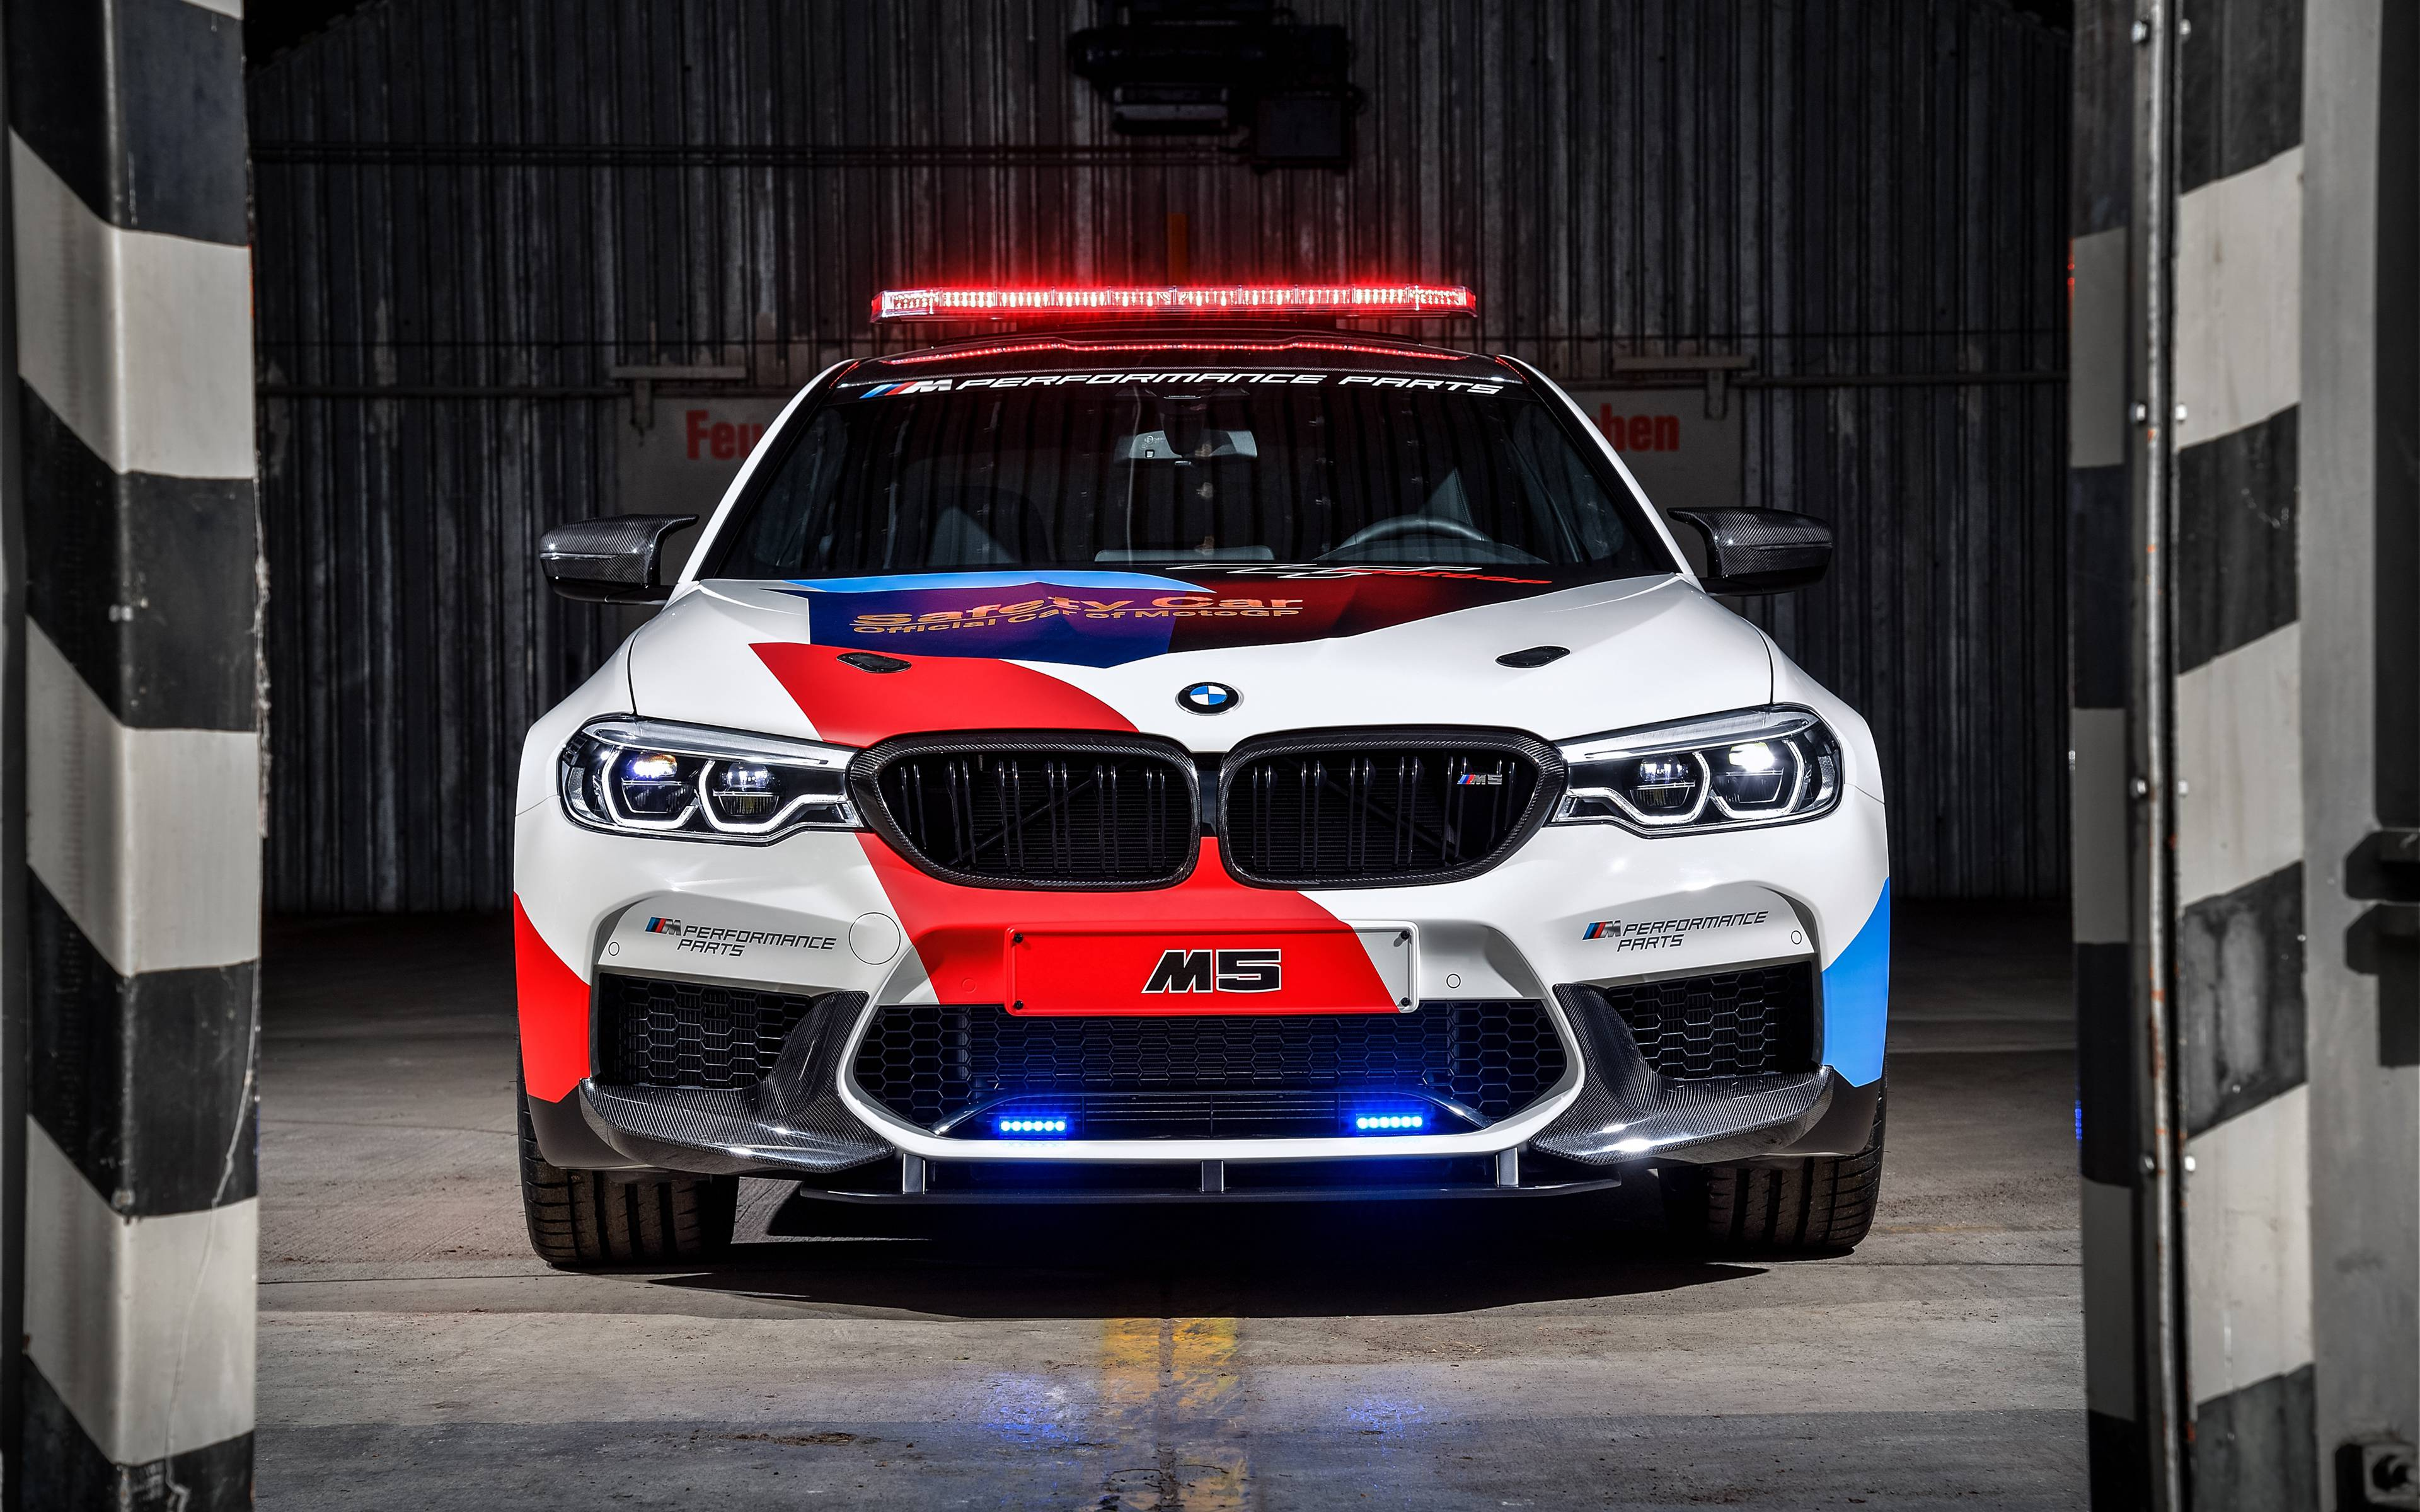 BMW M5 Motogp Safety Car 2018 4k Wallpaper